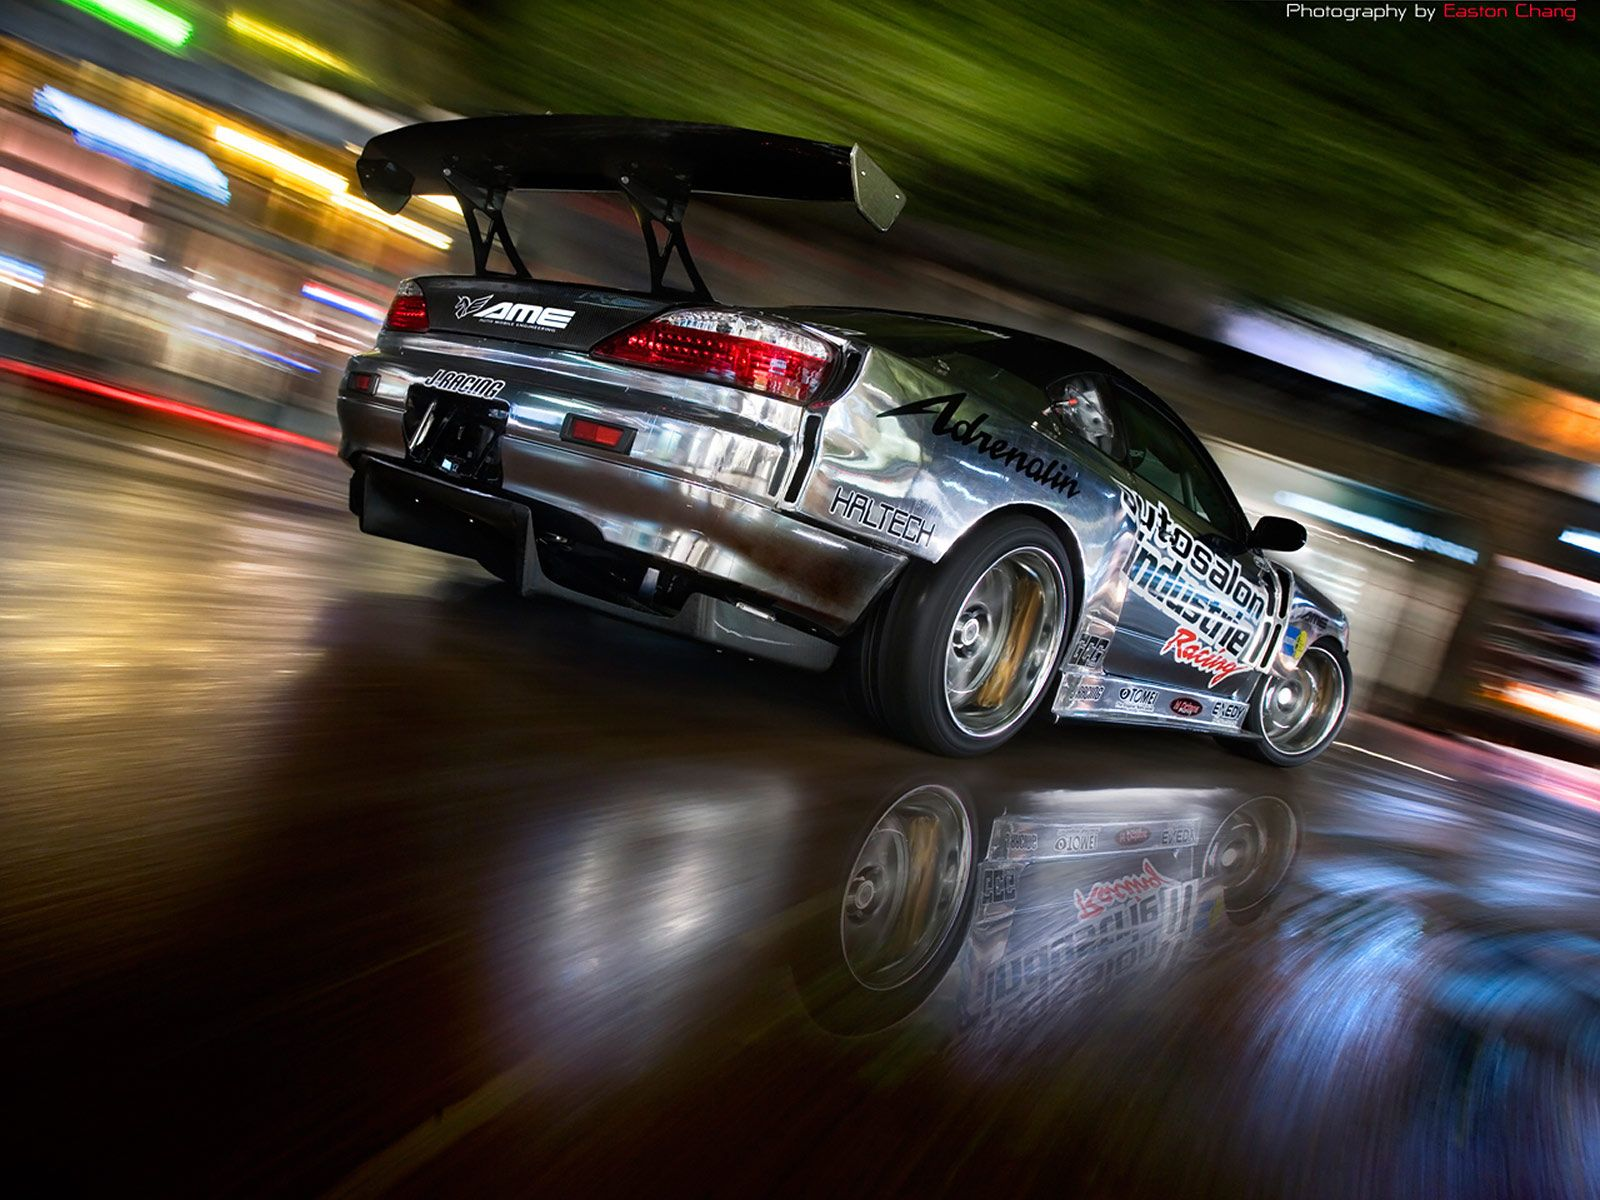 Epic Car Wallpapers (49 Wallpapers) - Adorable Wallpapers